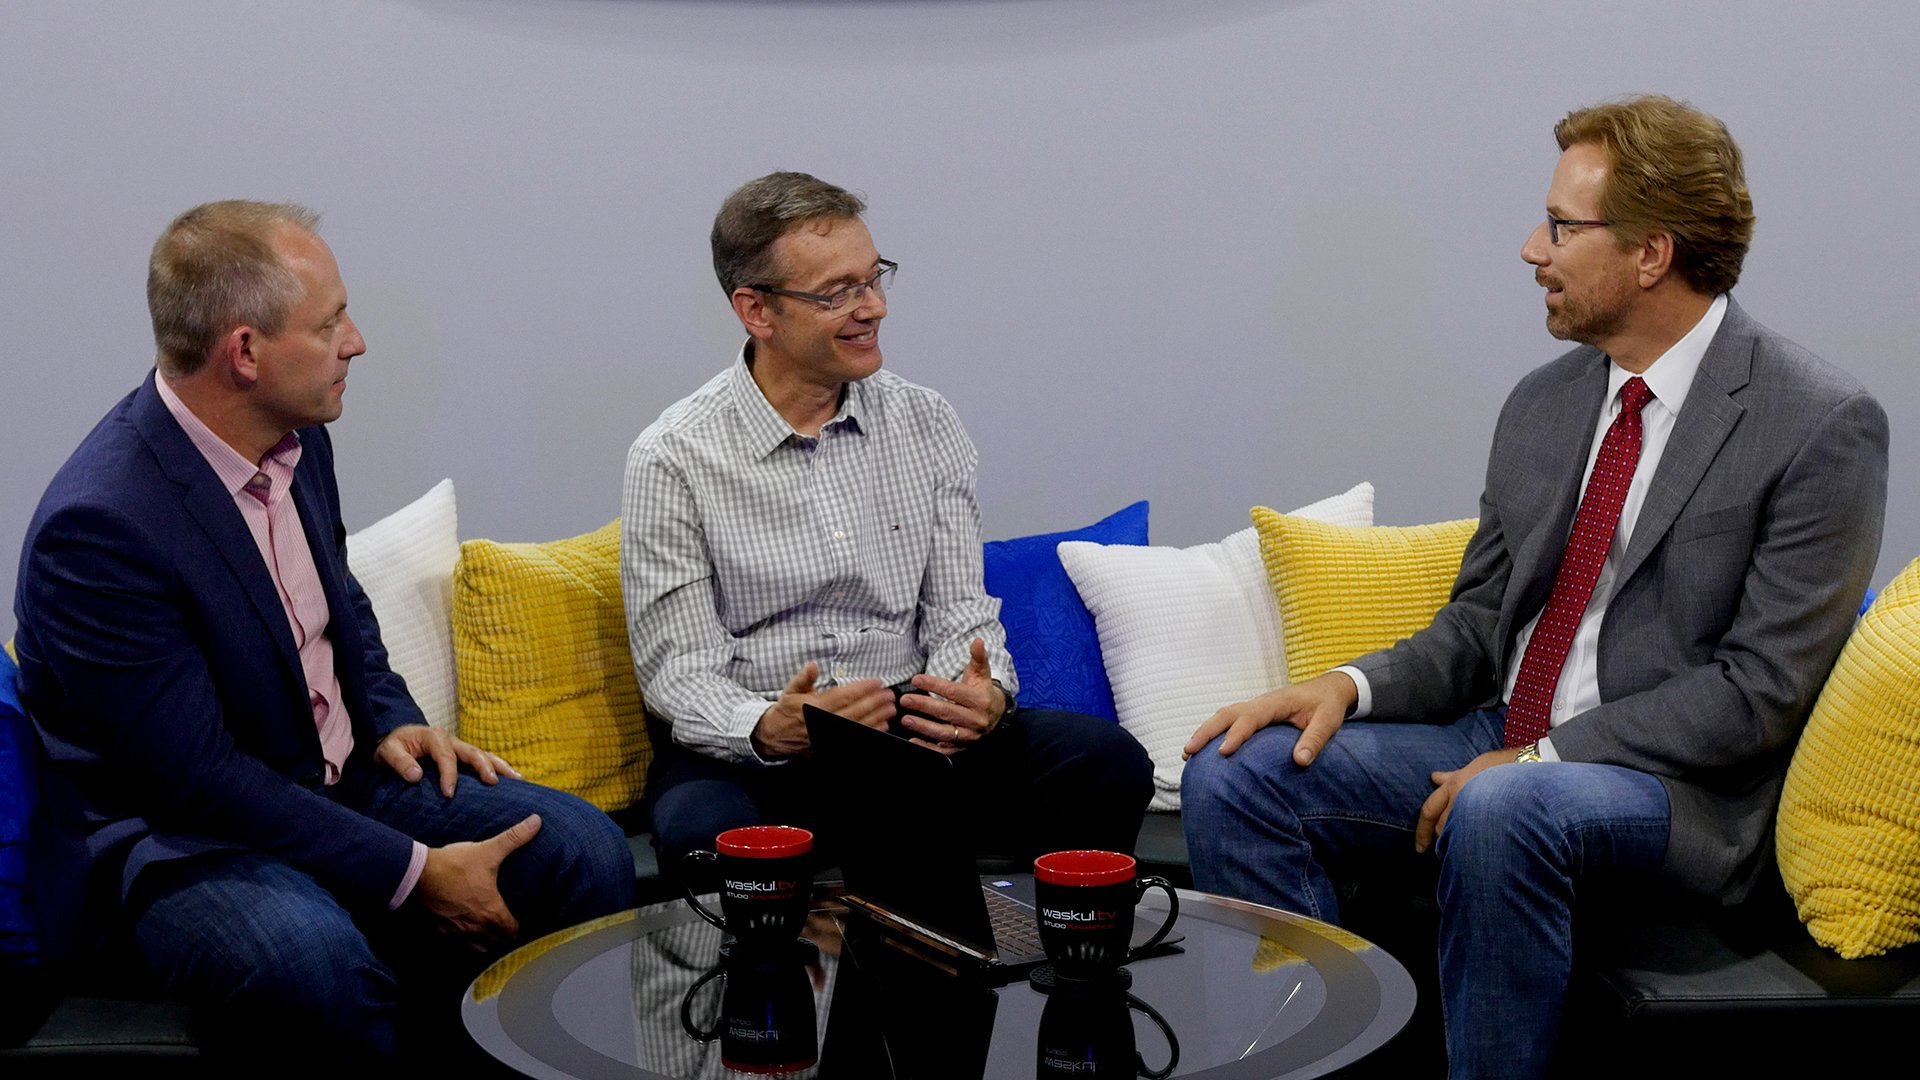 Xavi Garcia, General Manager and Global Head of HP Workstations and Josh Peterson, VP, Head of Worldwide Product Management for HP Workstations with Steve Waskul on the StudioXperience Broadcast Stage at SIGGRAPH 2017